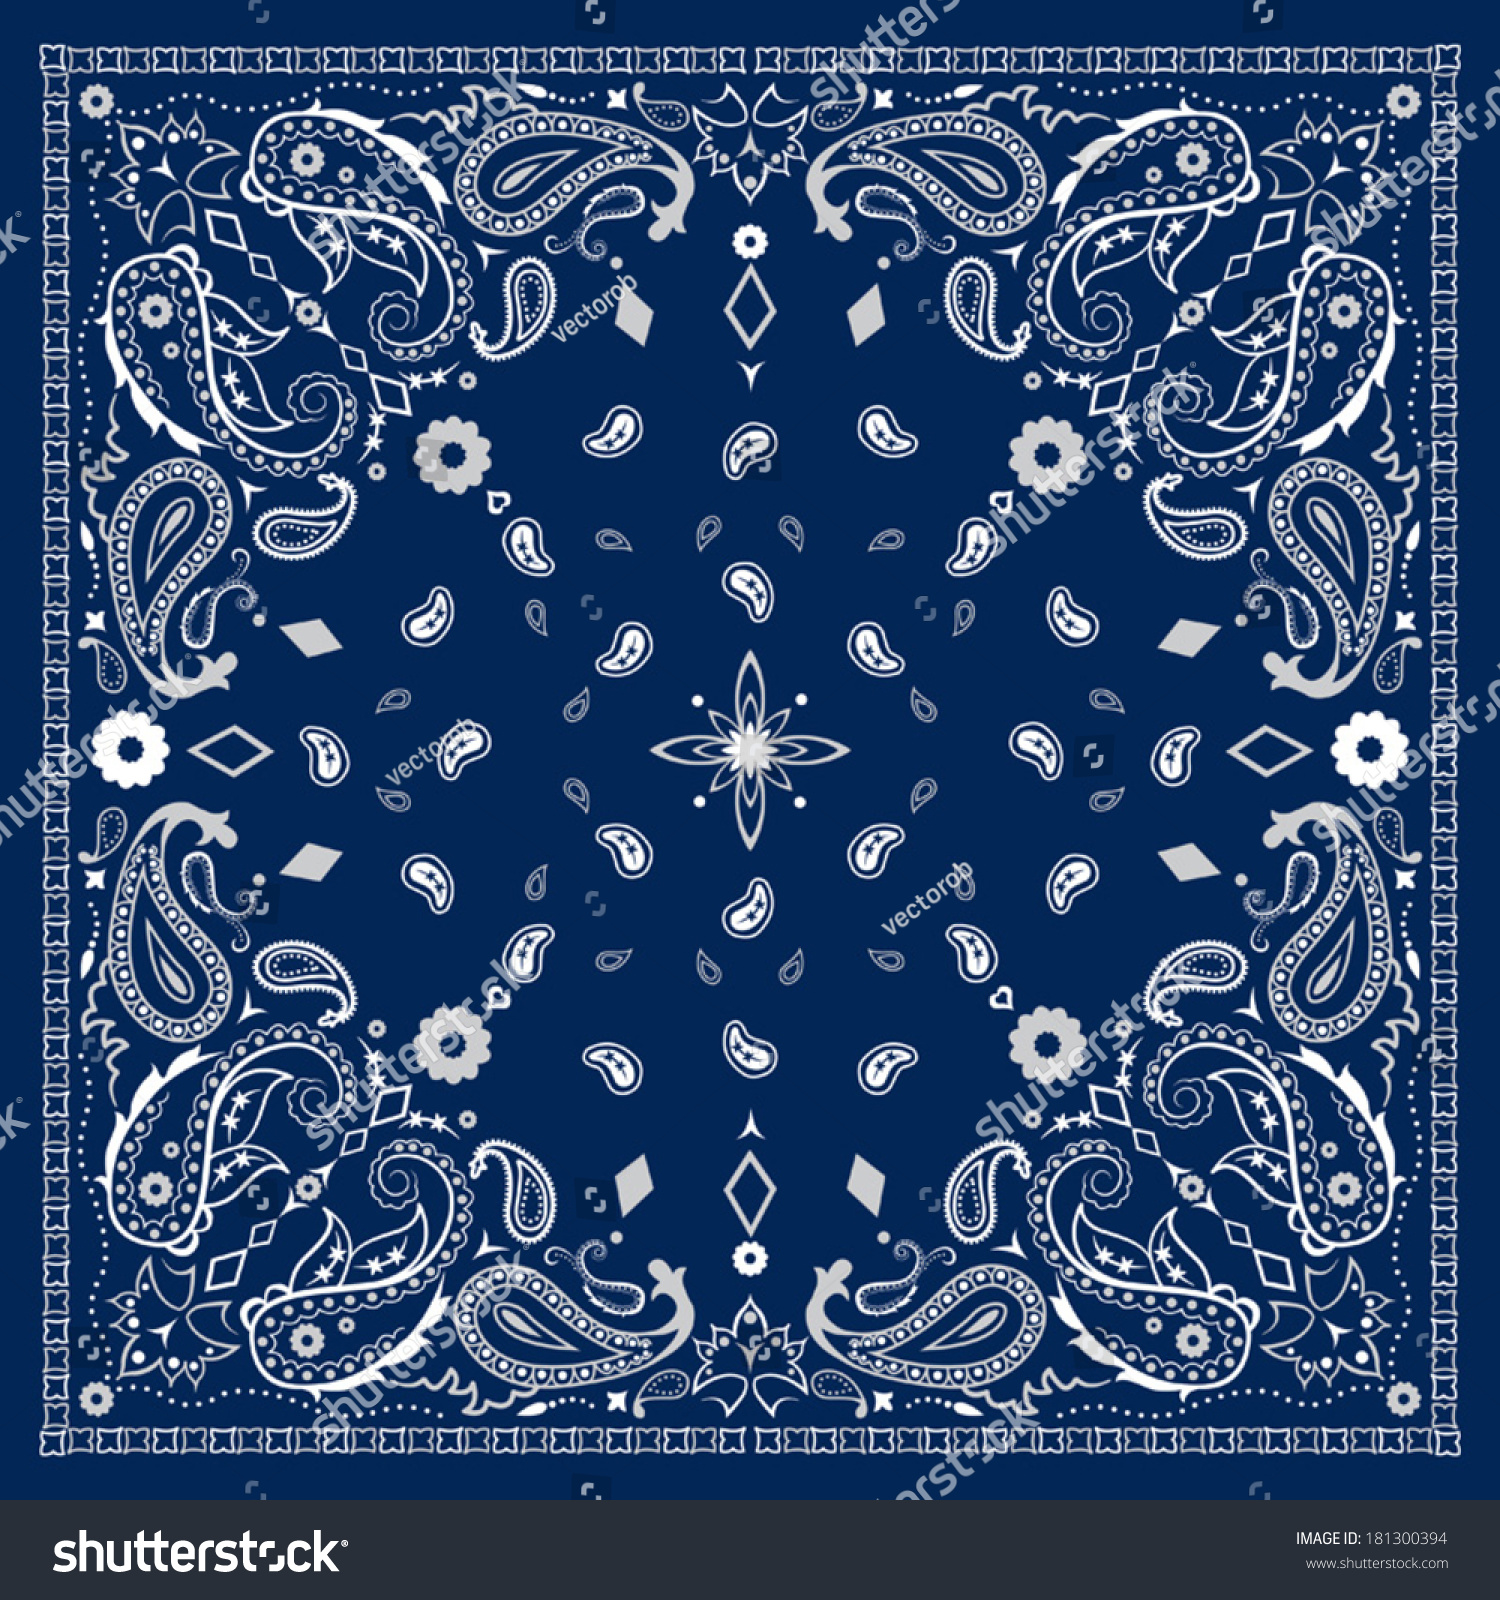 Shop for Paisley quilting fabric by the yard. Find both classic and modern prints perfect for apparel, home décor, or a craft project. QT Fabrics Patchwork Farms Paisley Bandana White. $ Only 25 left in stock - order Collegiate Cotton Broadcloth University of North Carolina Bandana Blue. $ Only 23 left in stock - order.